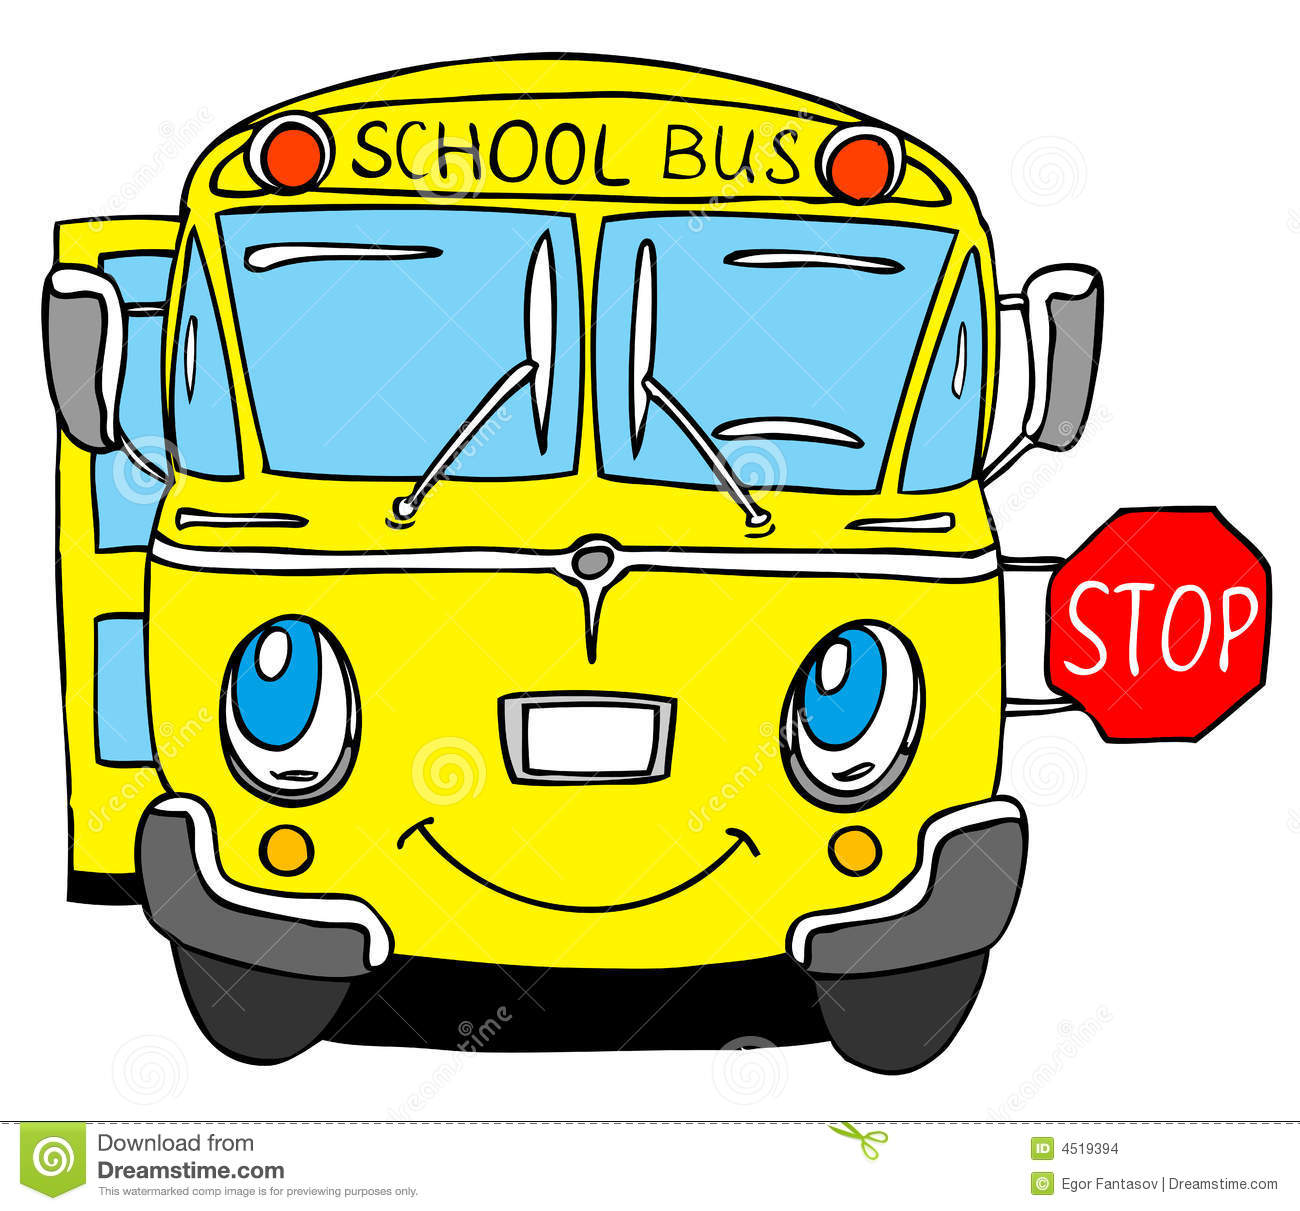 Autobus scolaire illustration de vecteur illustration du - Bus scolaire dessin ...